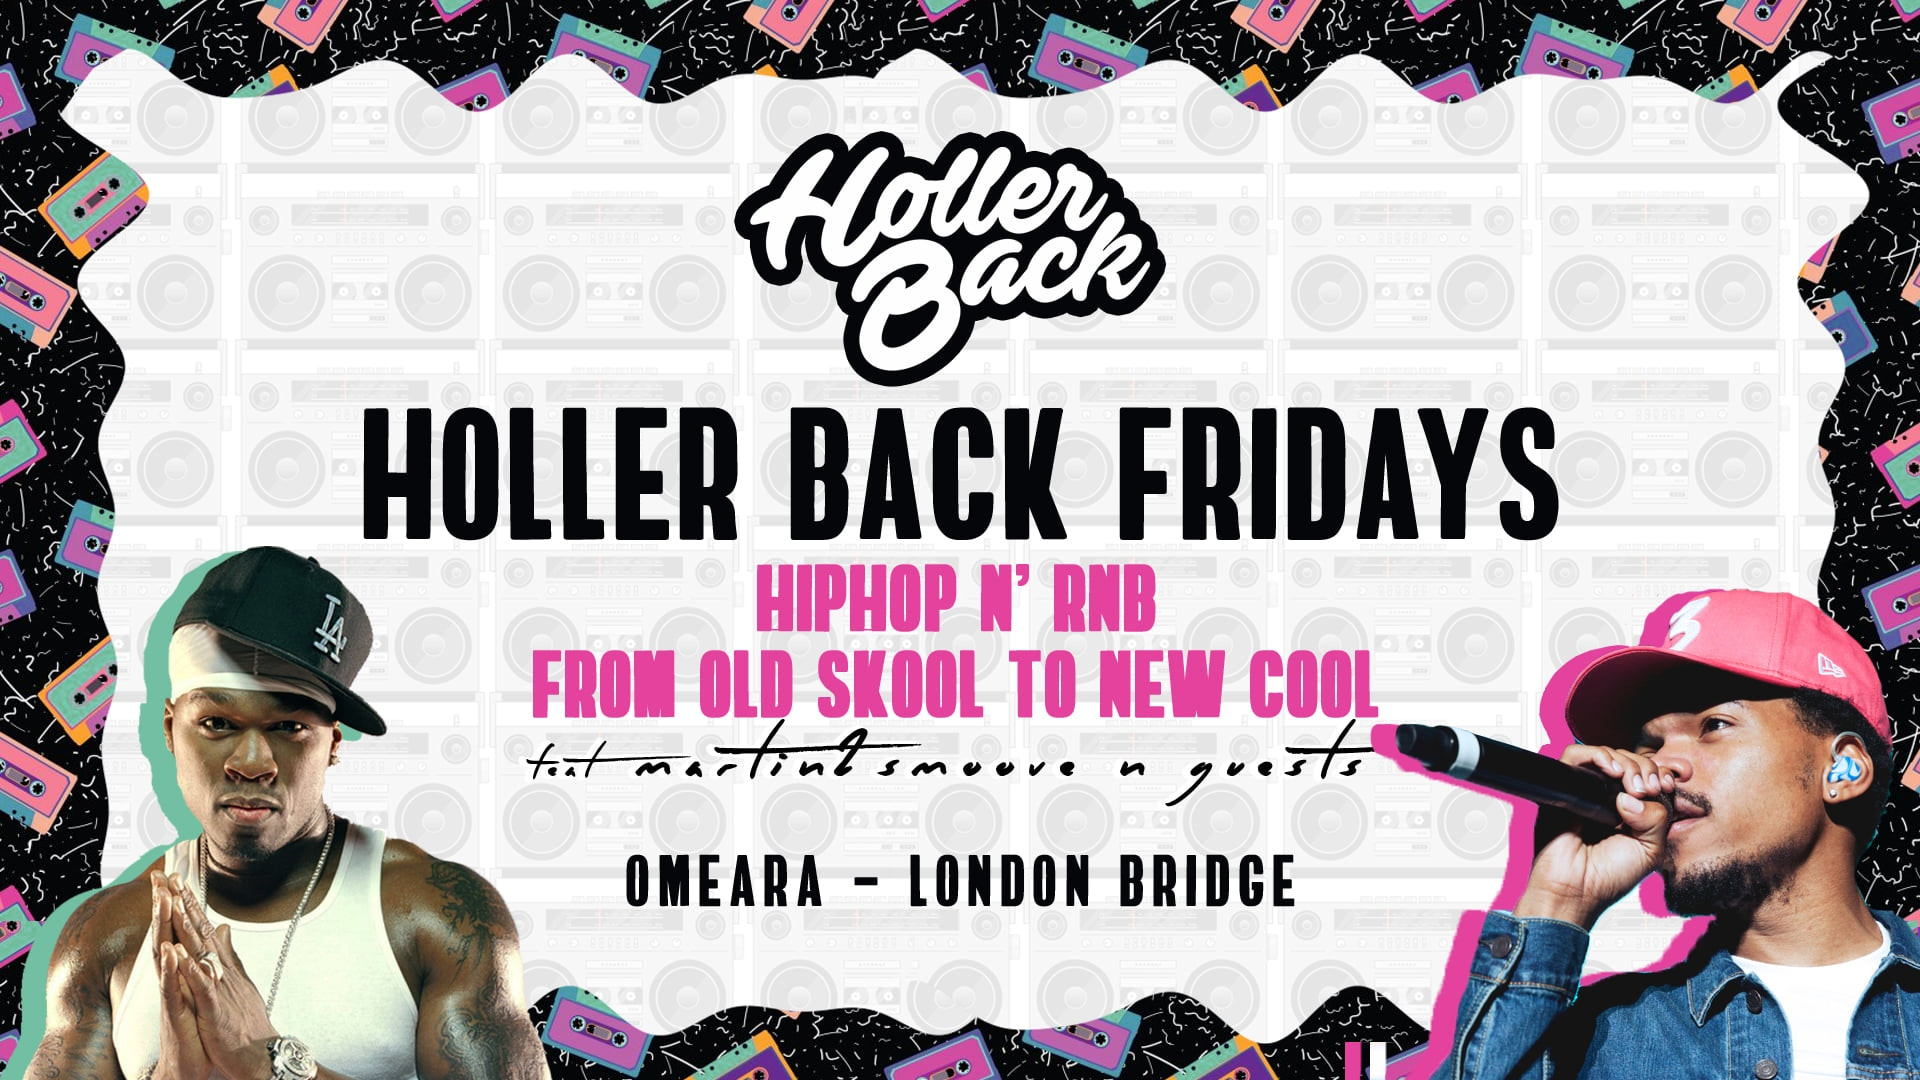 Holler Back – HipHop n R&B at Omeara London | Free Student Tickets